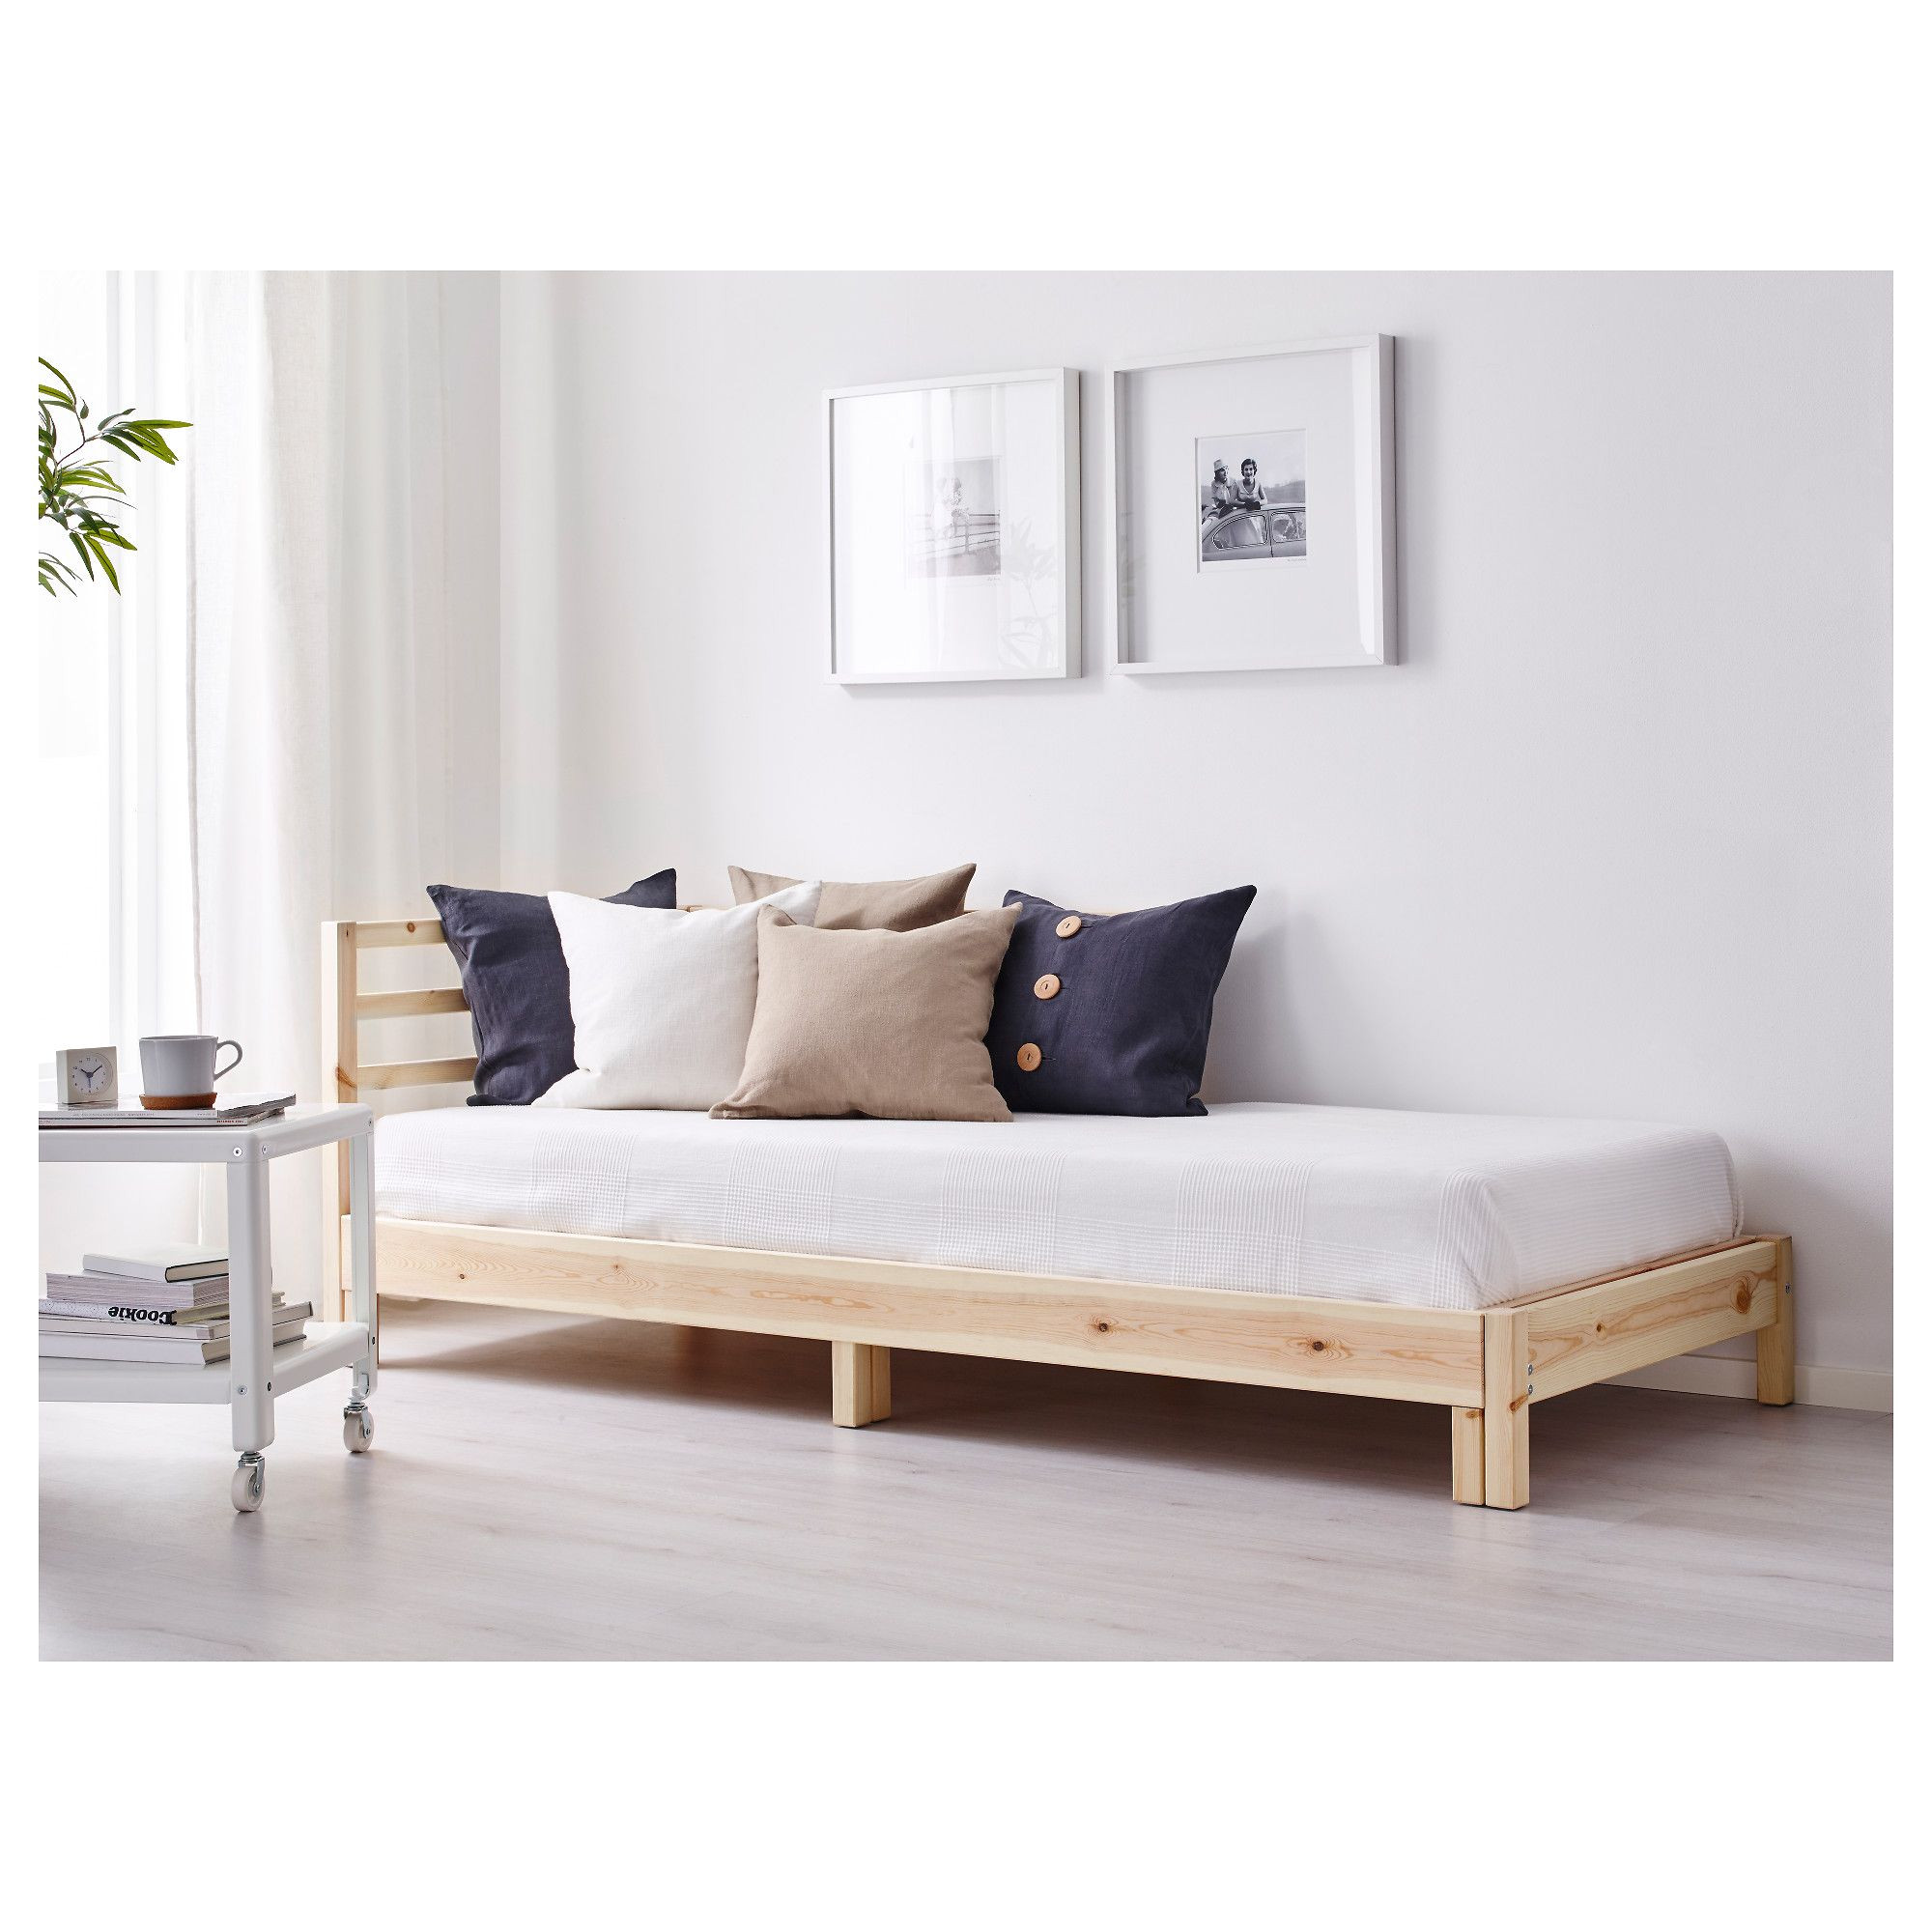 ikea tarva day bed with 2 mattresses two functions in one chaise longue by day and bed by night